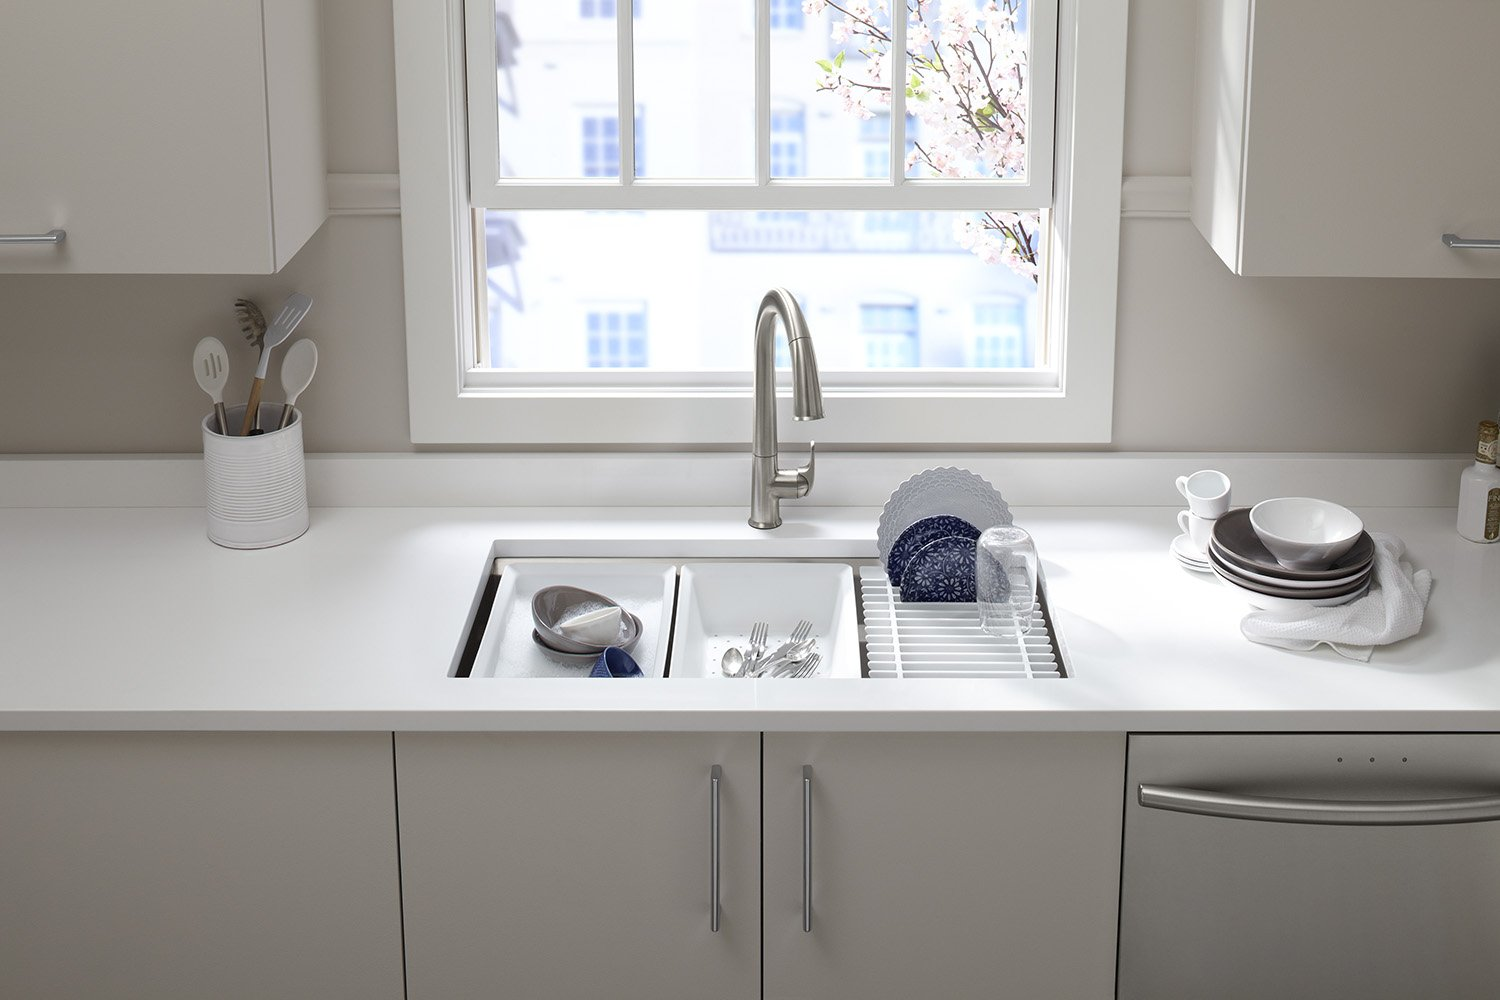 KOHLER Prolific 33 inch Workstation Stainless Steel Single Bowl Kitchen Sink with included Accessories, 11 inches deep, 18 gauge, Undermount installation K-5540-NA by Kohler (Image #8)